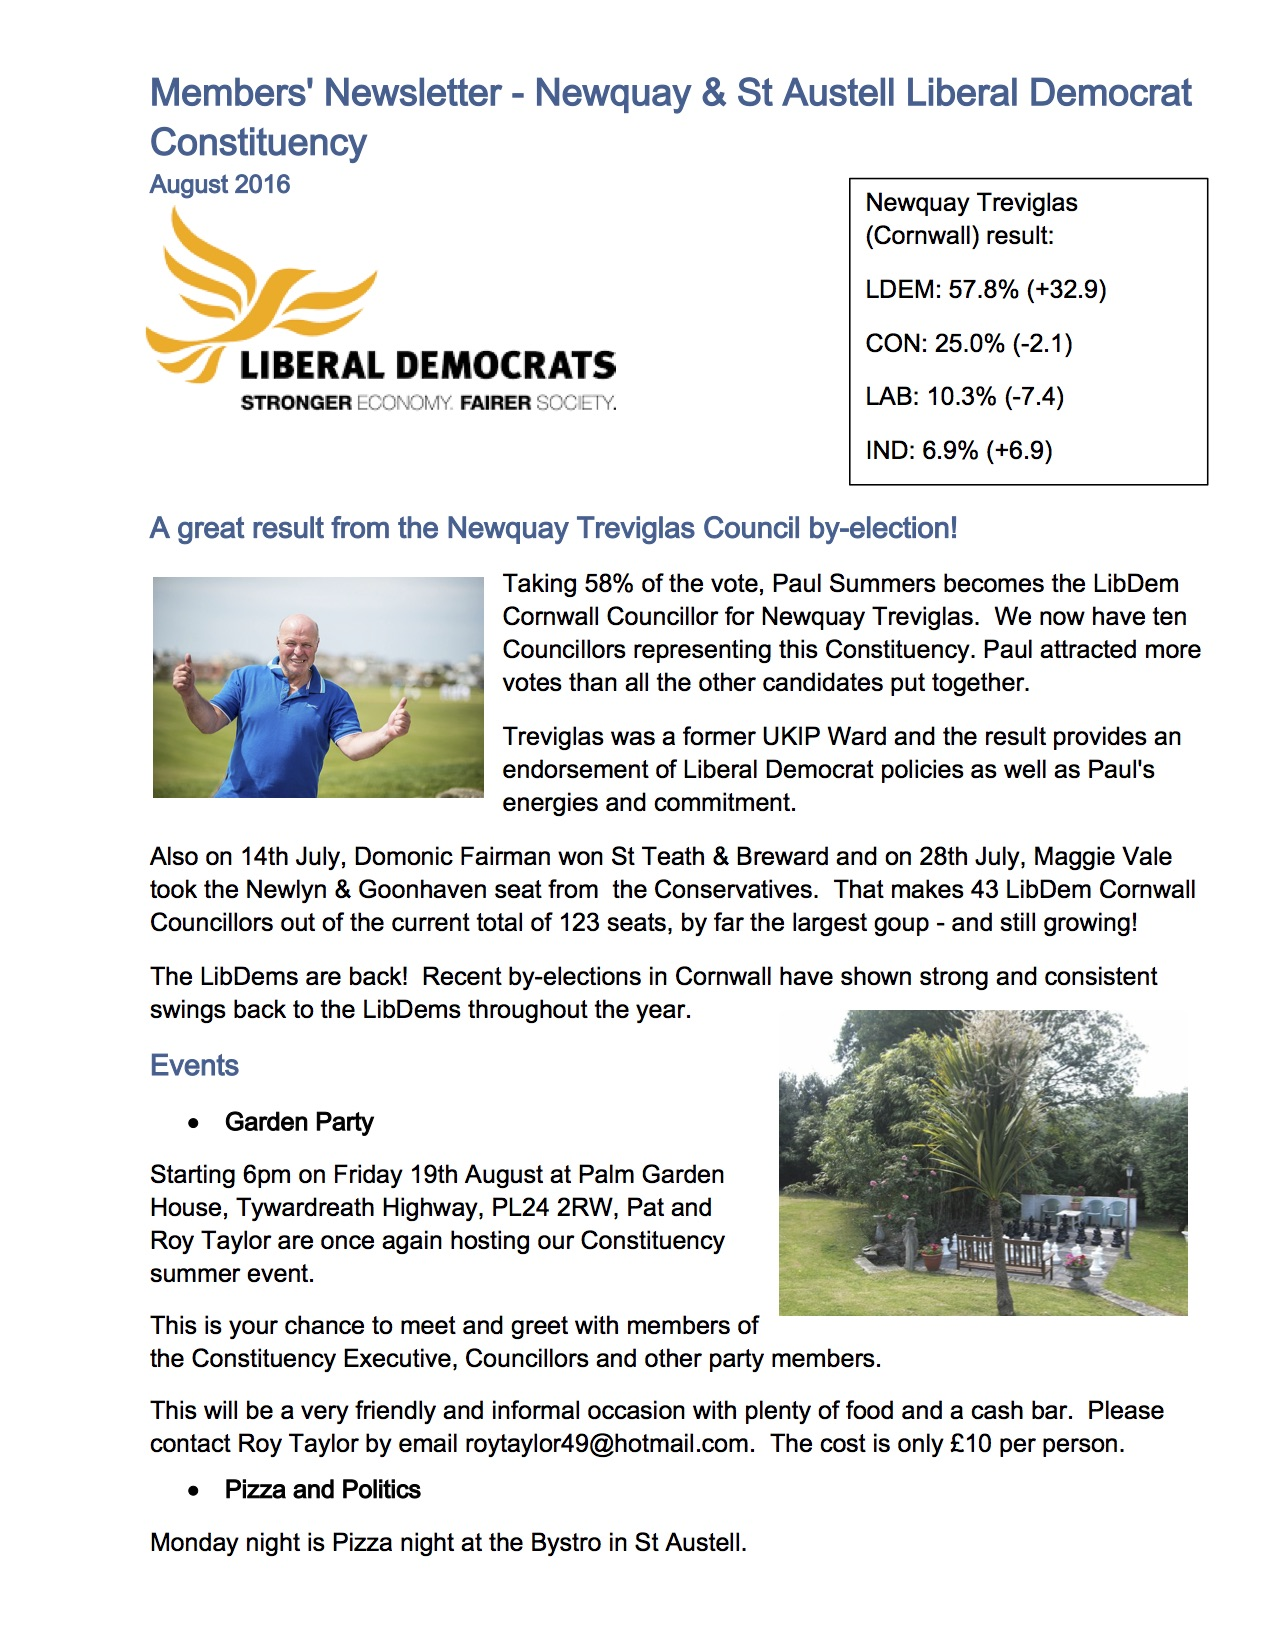 Members_Newsletter2(Aug)_P1.jpg